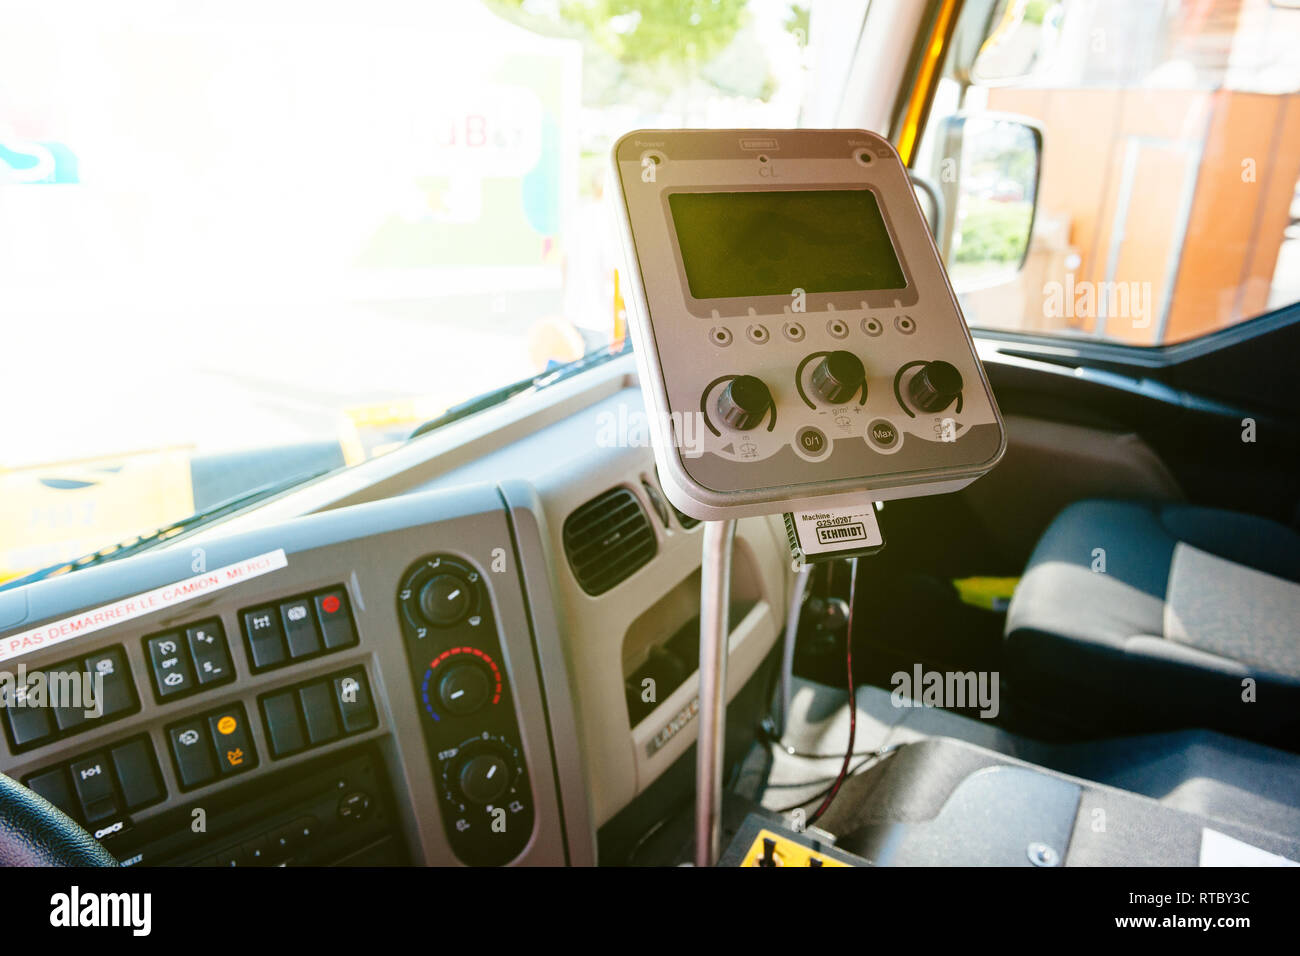 Paris France Sept 5 2014 Interior Of Modern Renault Industrial Sewer Cleaning Truck With Vacuum And Hydro Excavation Buttons Steering Wheel Dashboard Command Schmidt Tech Stock Photo Alamy